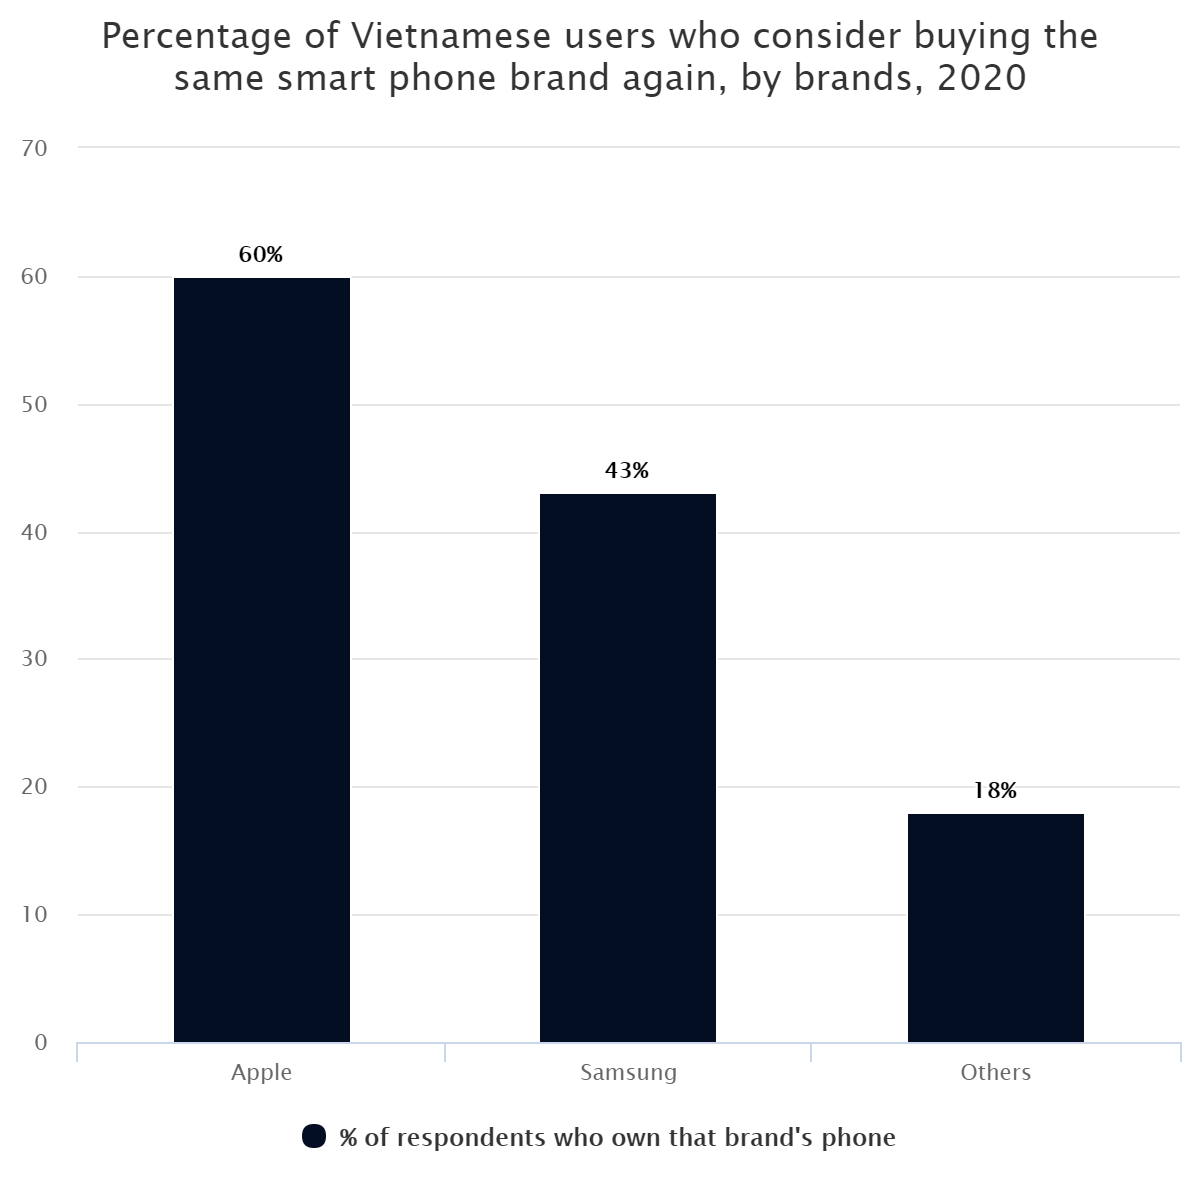 Percentage of Vietnamese users who consider buying the same smart phone brand again, by brands, 2020